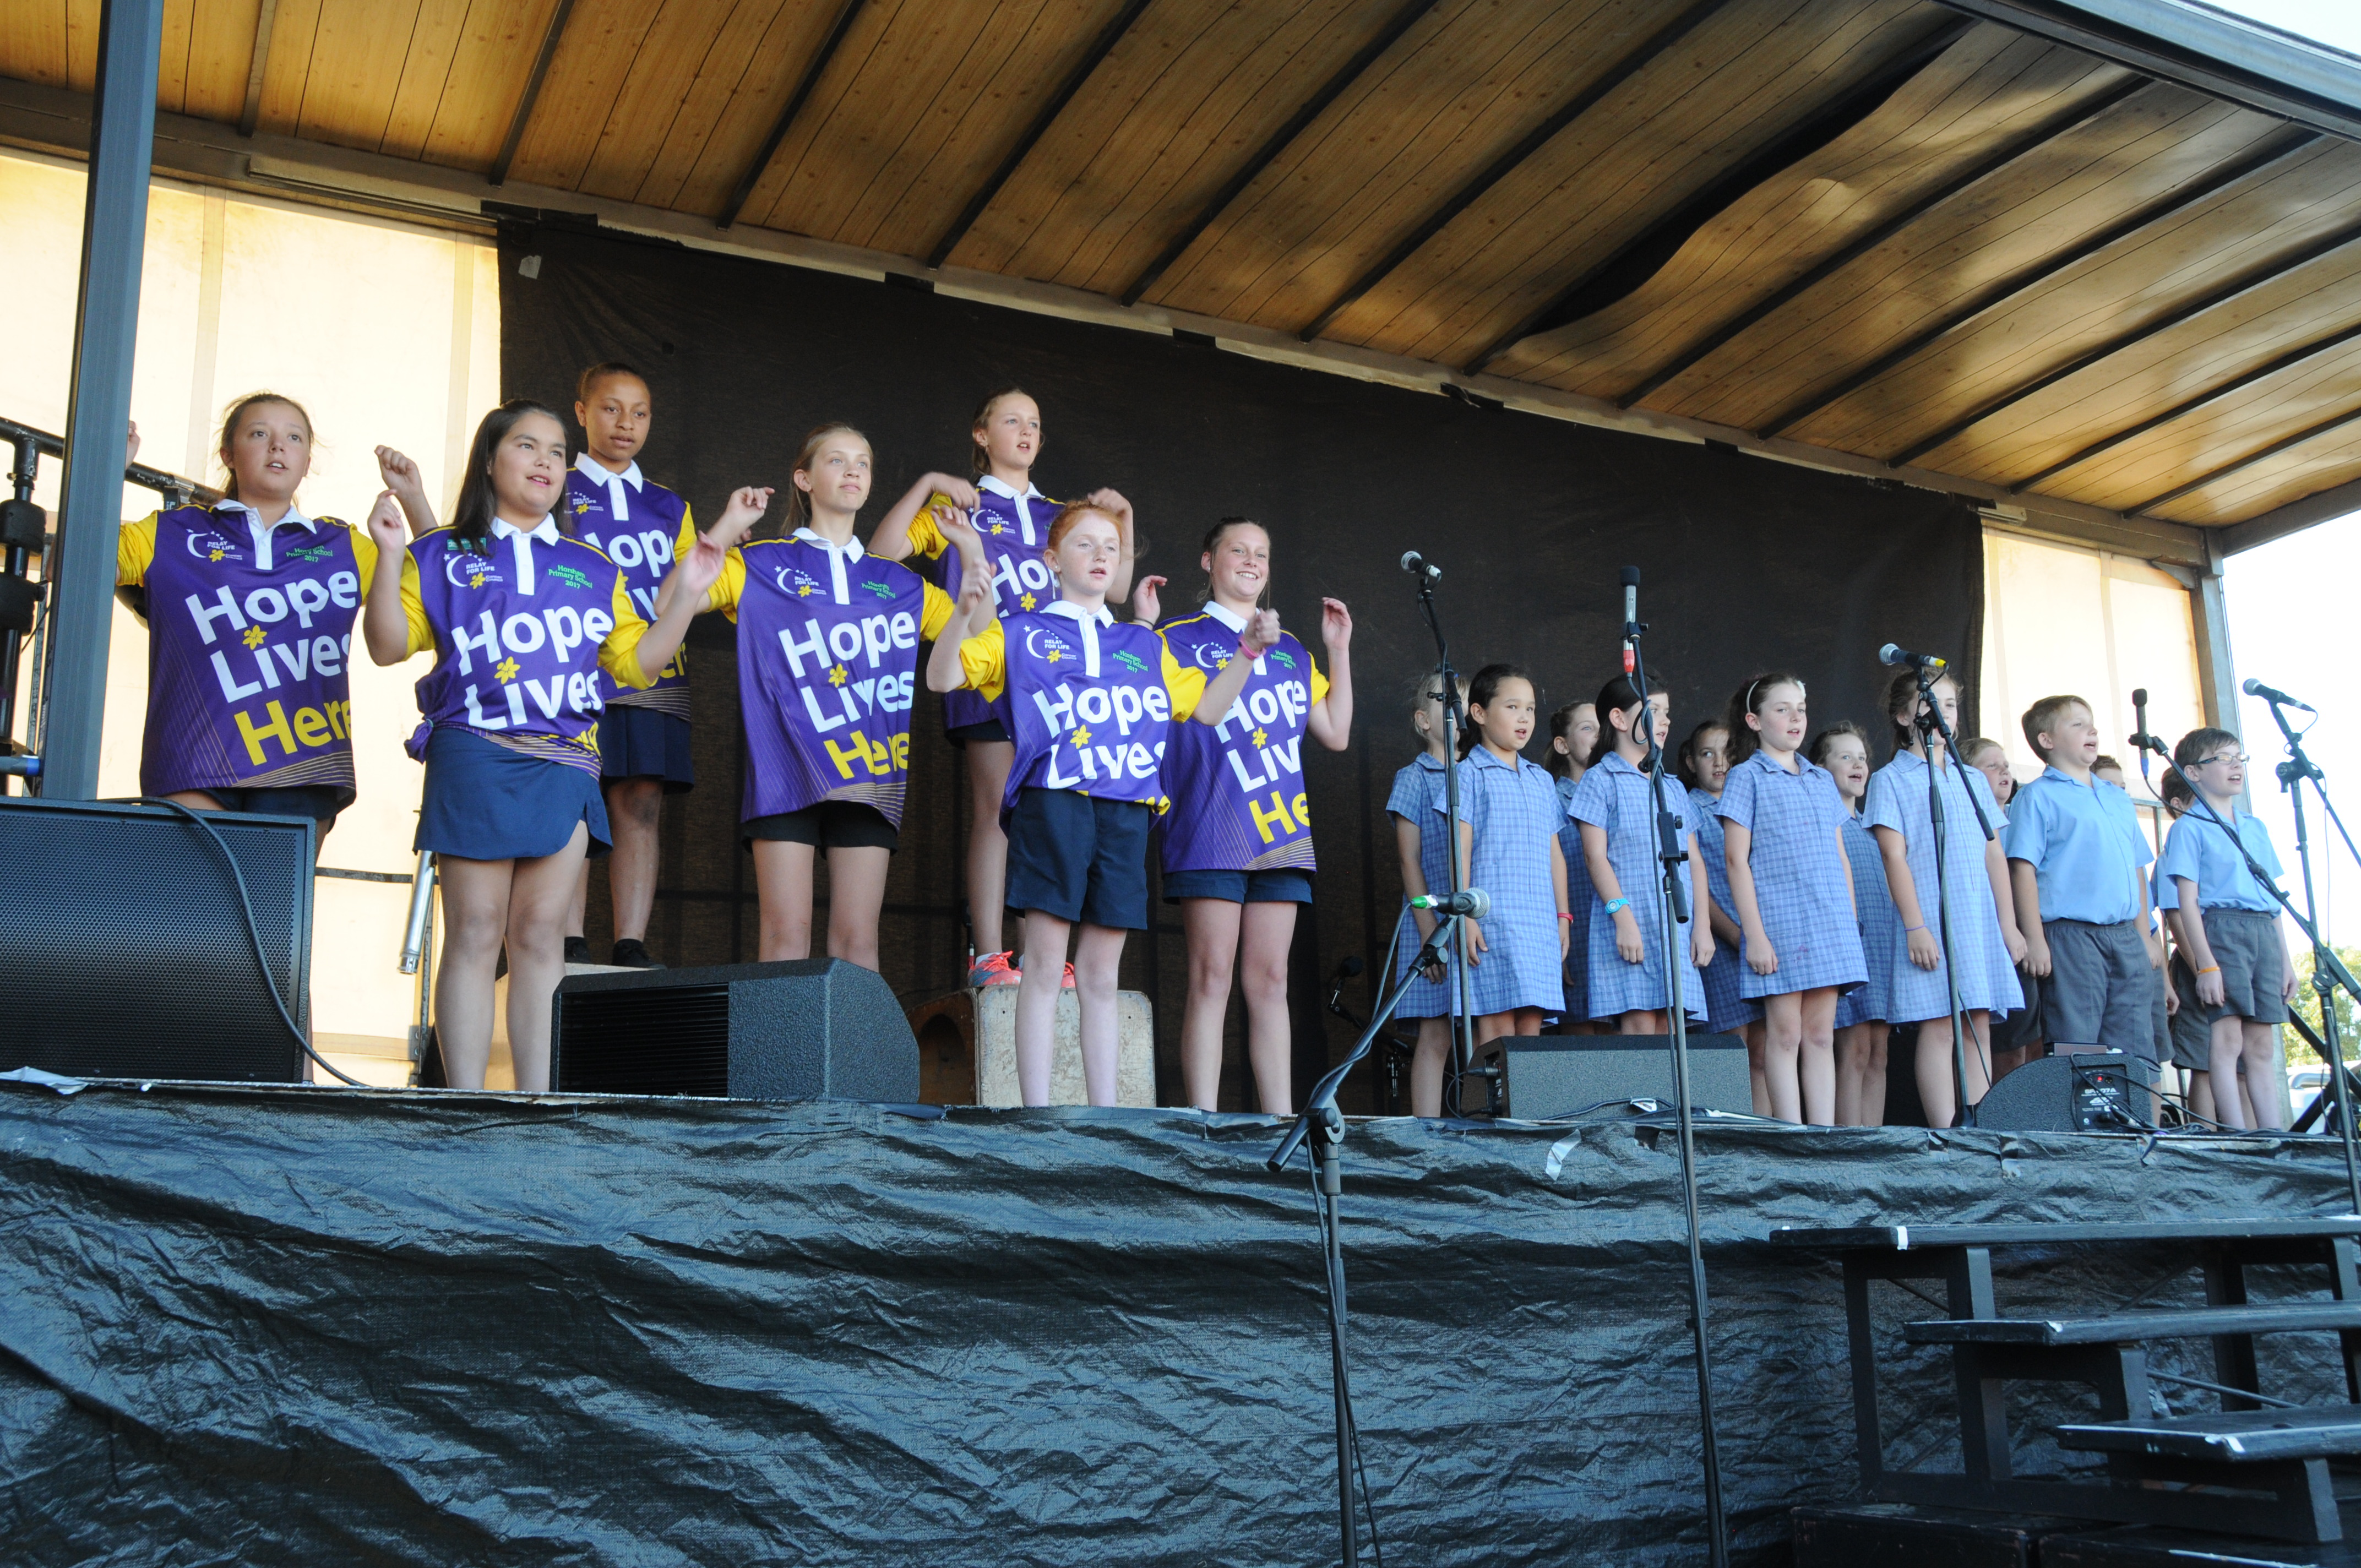 Image - Horsham and District Relay for Life, 170317. Horsham Primary School signing choir, and Holy Trinity Lutheran School pupils perform the national anthem.